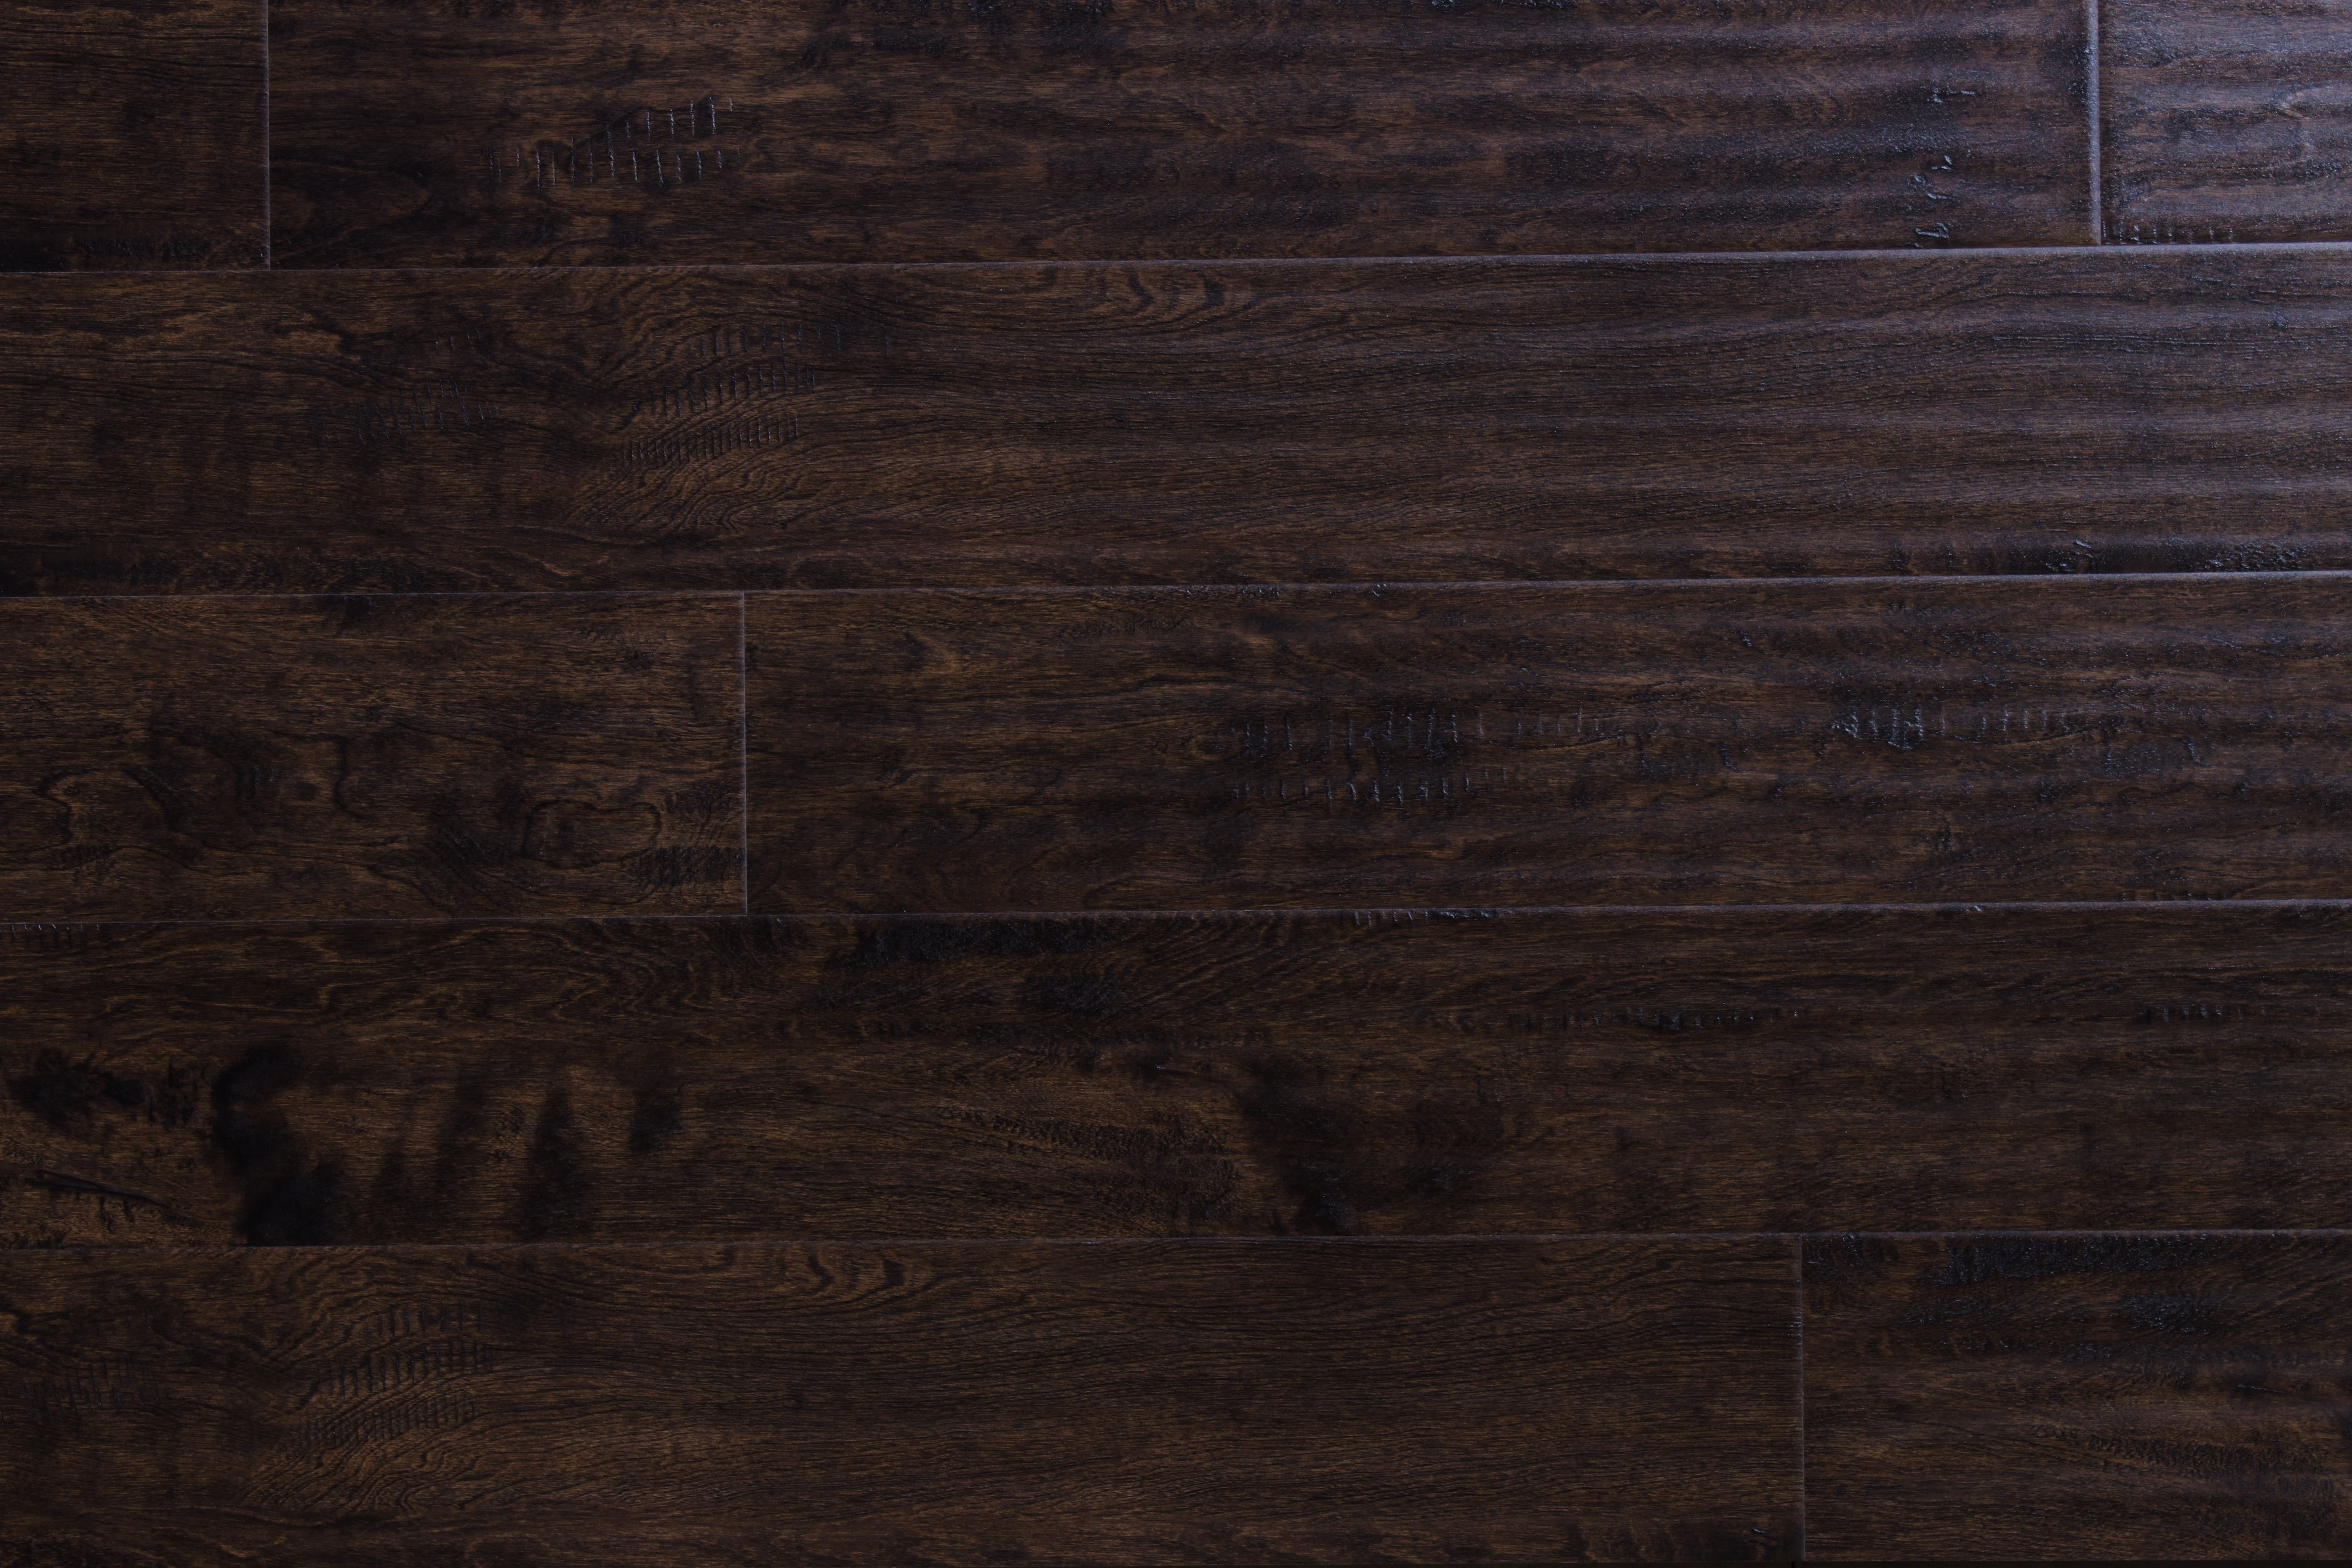 hardwood flooring warehouse toronto of wood flooring free samples available at builddirecta pertaining to tailor multi gb 5874277bb8d3c